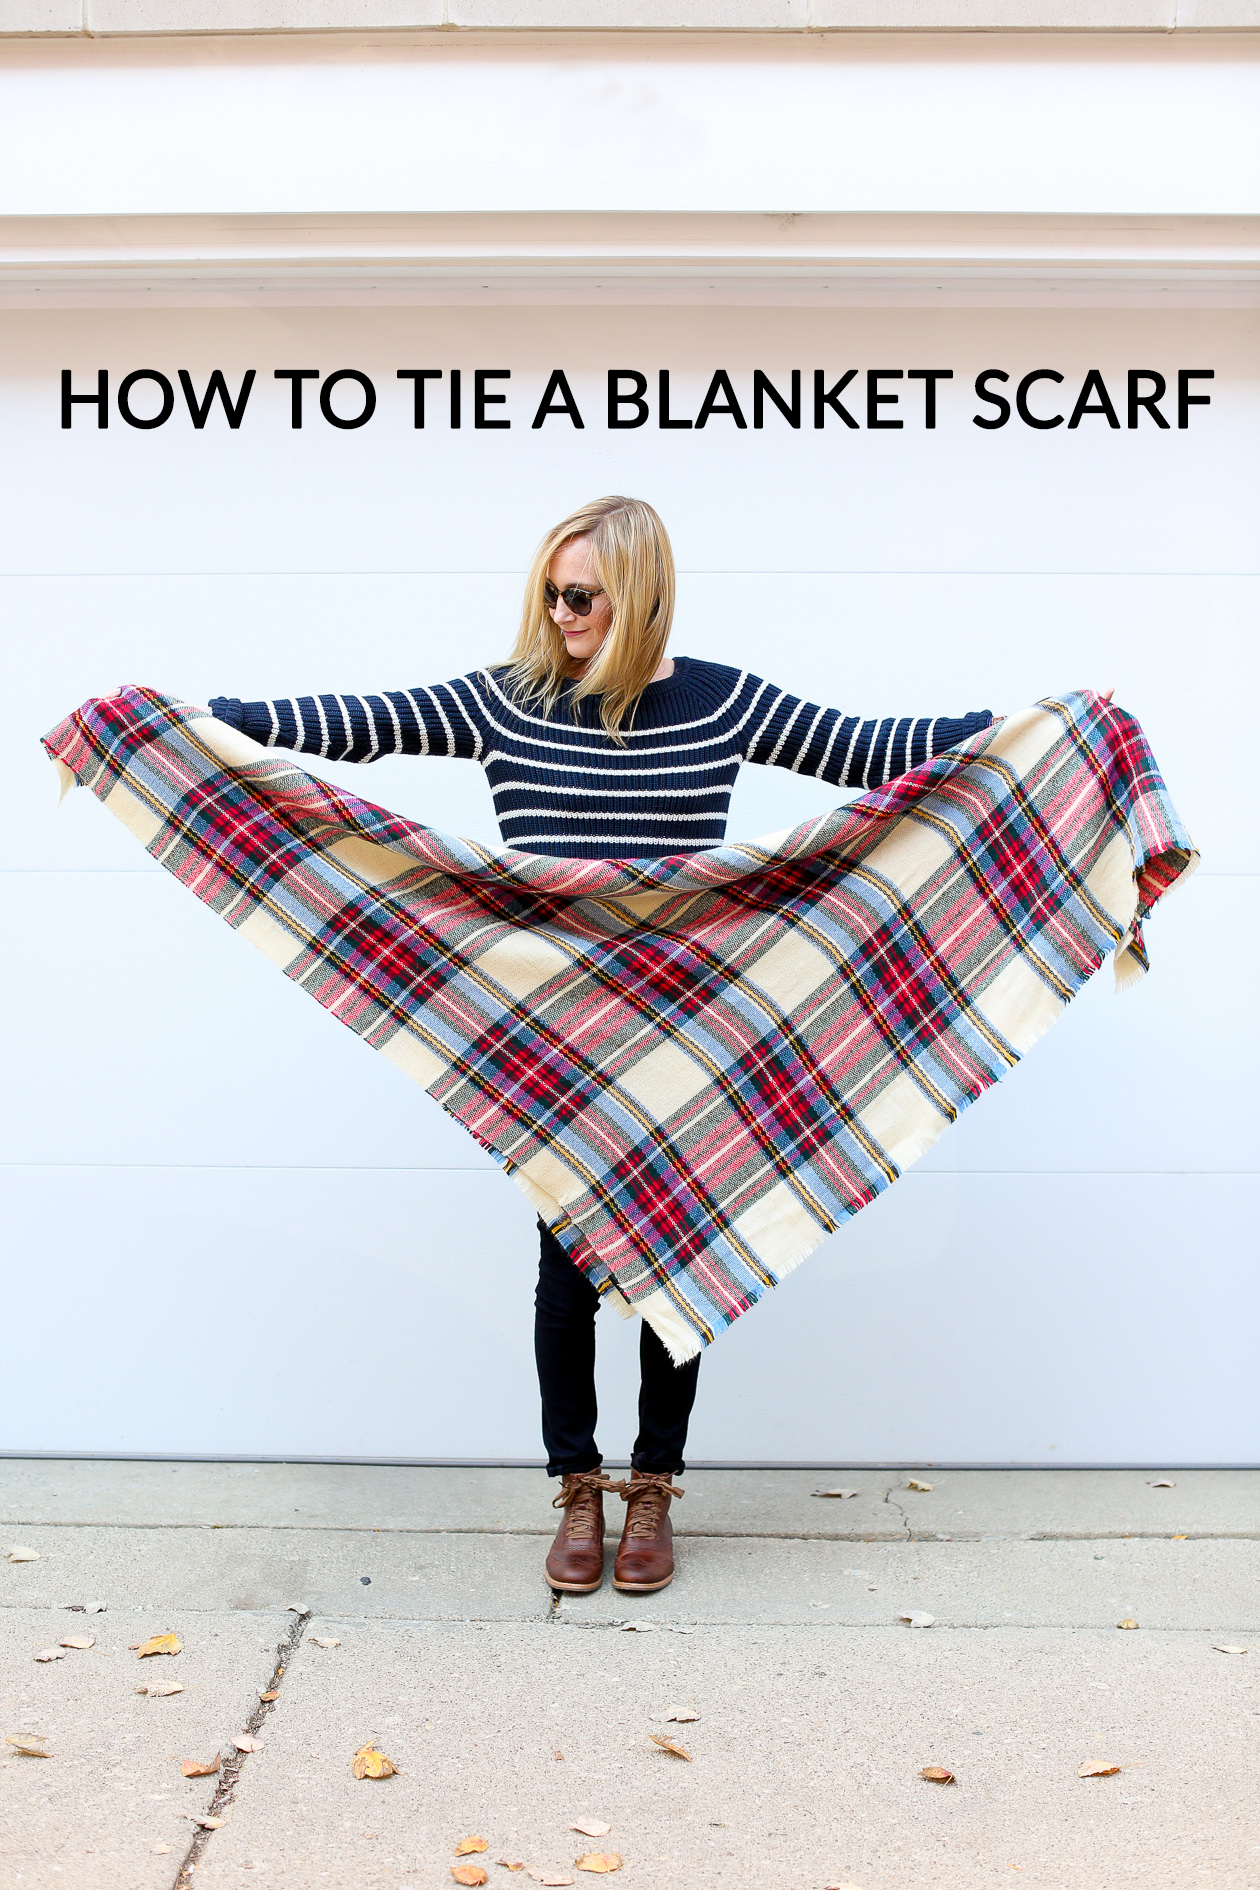 how-to-tie-a-blanket-scarf-261